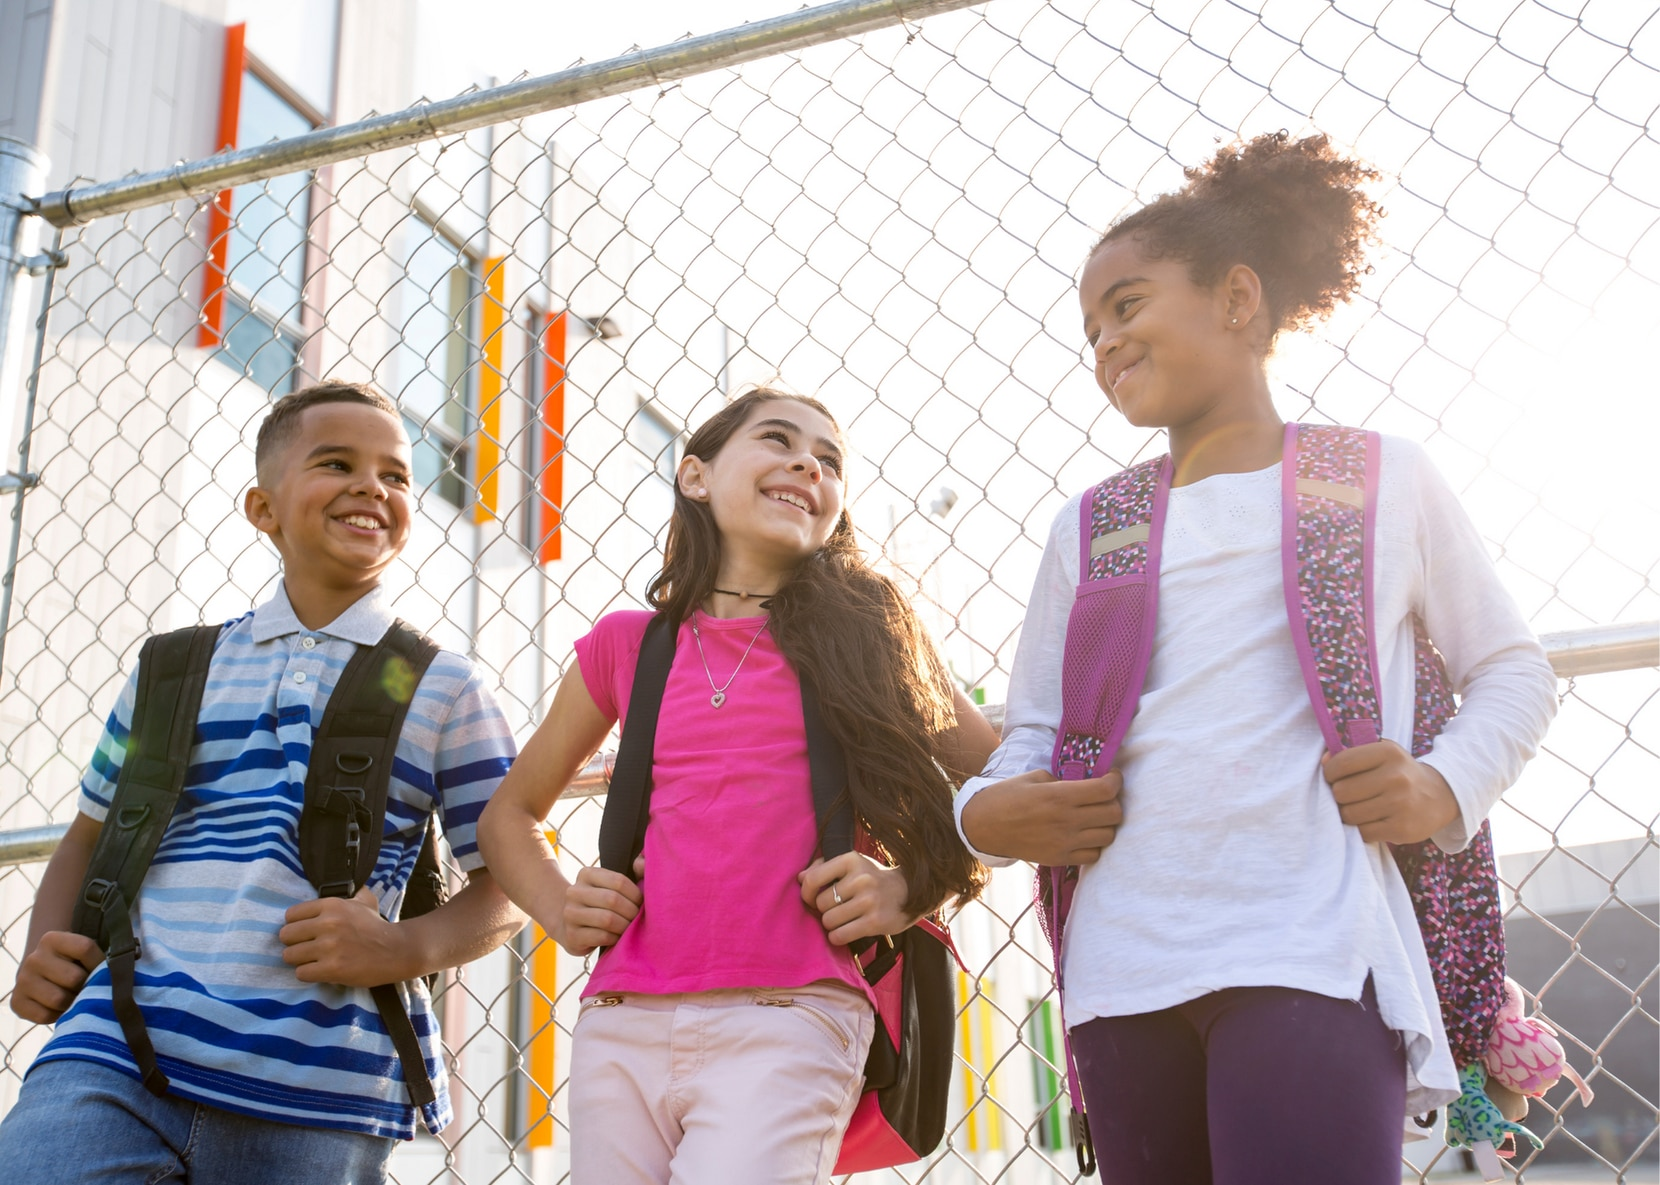 Parents of children between the ages of 9 and 12 should speak with their child's doctor to make an appointment for their child to receive an HPV vaccination.